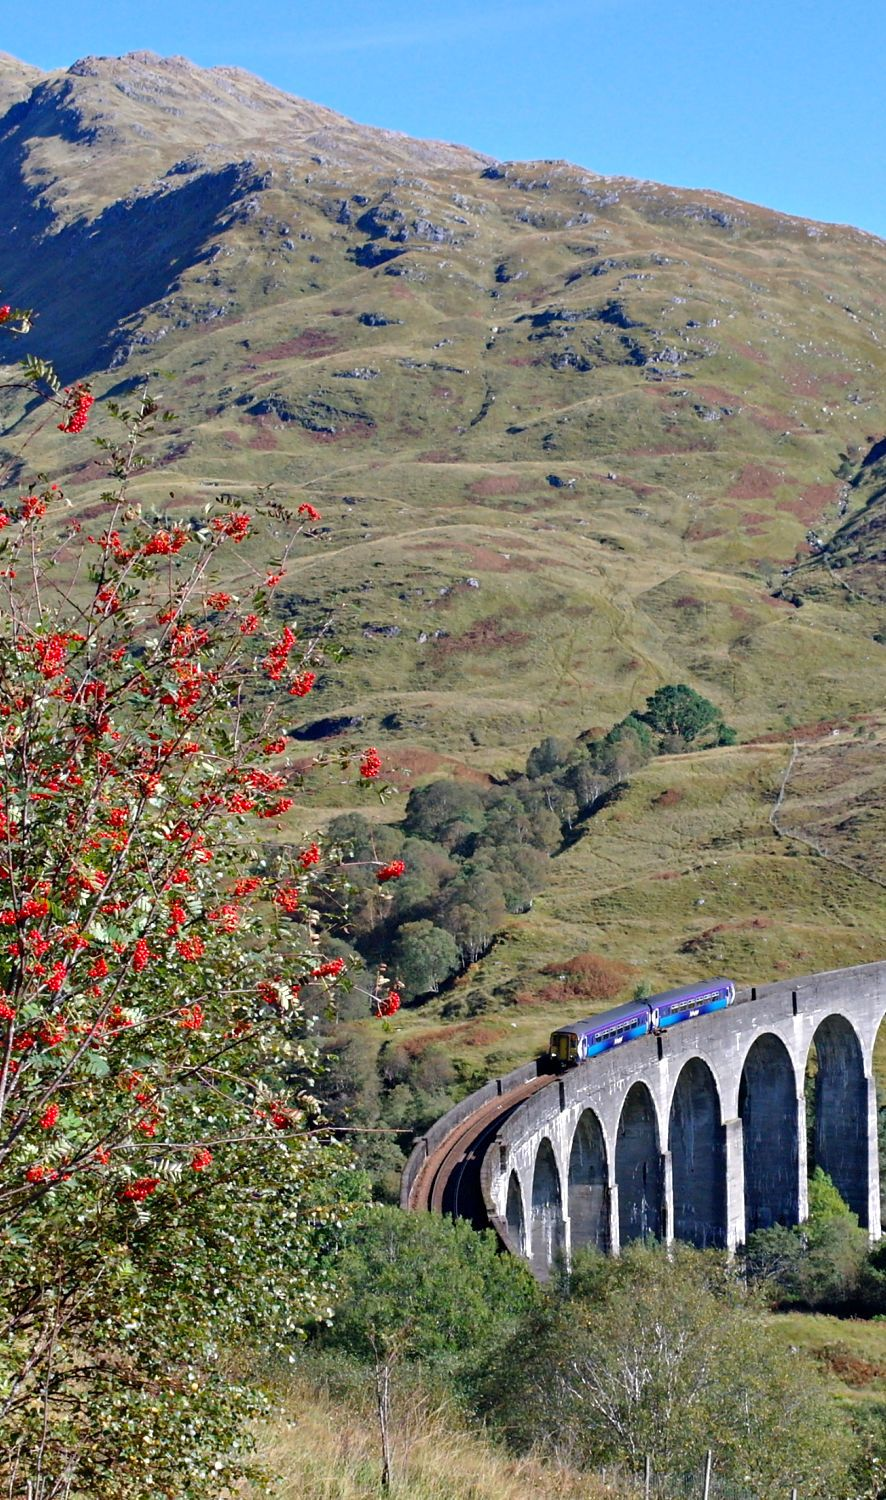 A 'regular' service crosses the Glenfinnan Viaduct (aka 'The Harry Potter Bridge') en route for Fort William. (If I'd waited, oh, a couple of hours while being  eaten by midges , I would have seen the Jacobite steam-hauled train. Hmm, perhaps another time…)